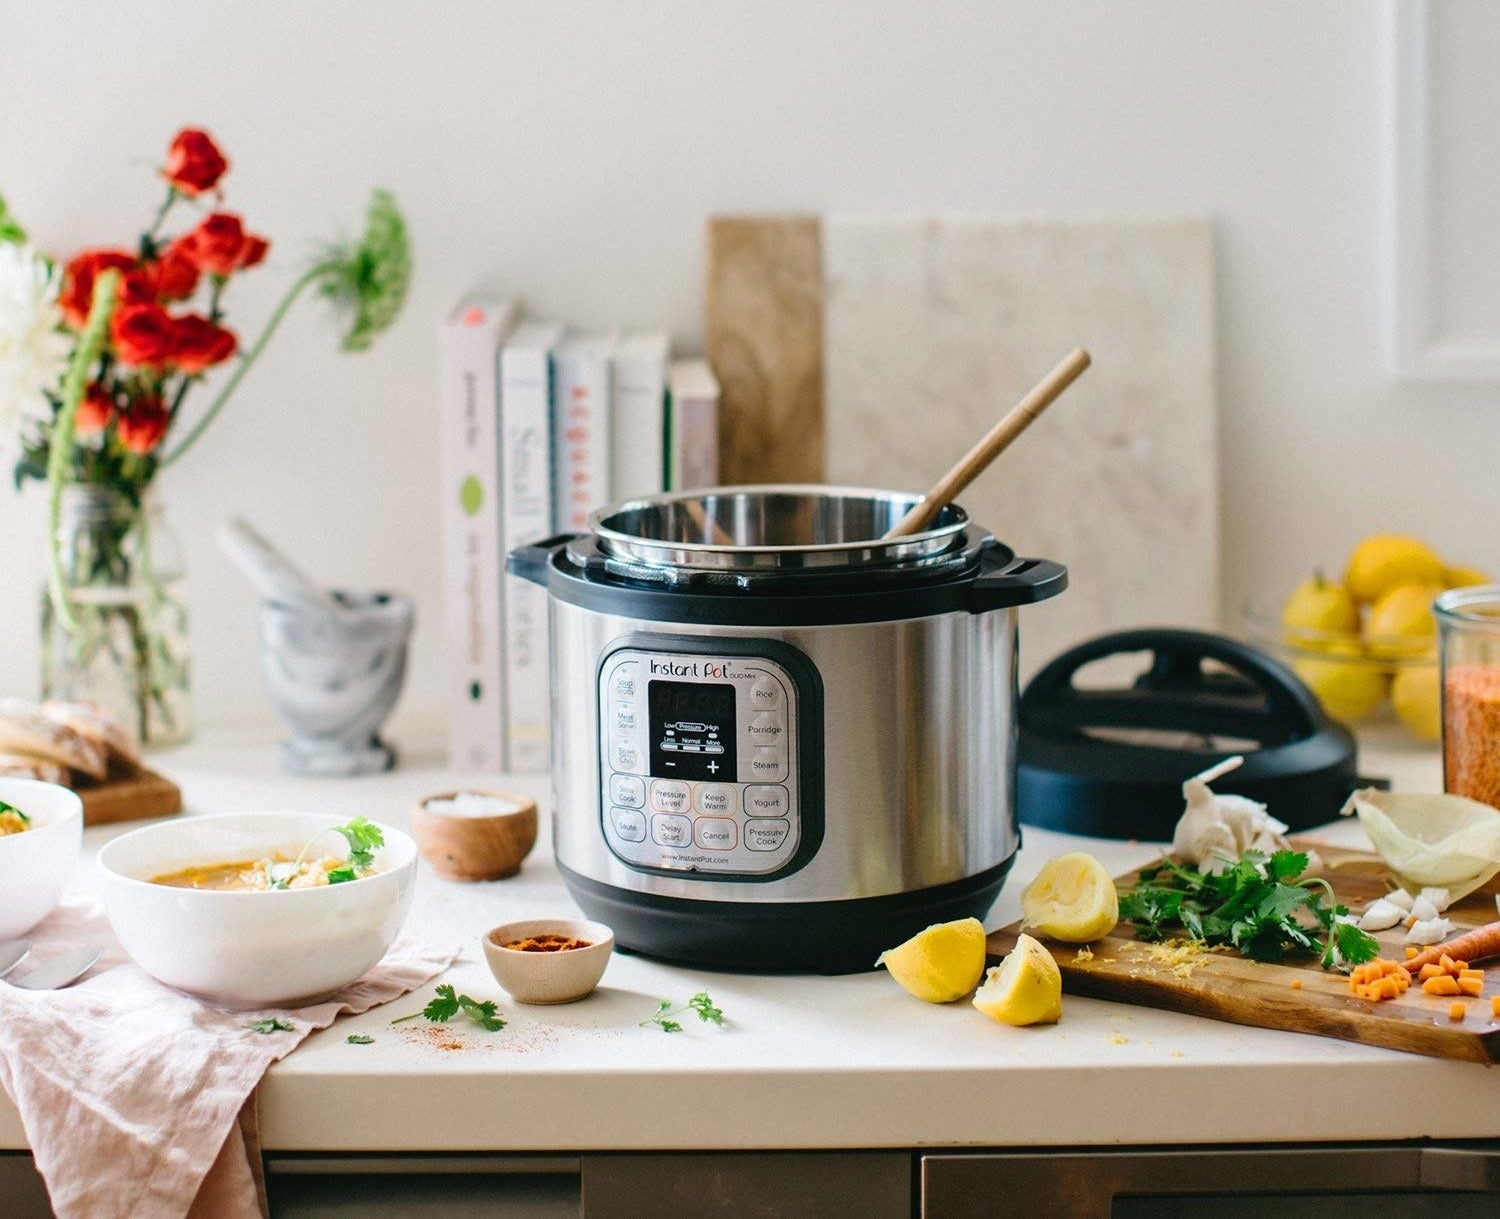 Instant Pot is used to make a soup dish